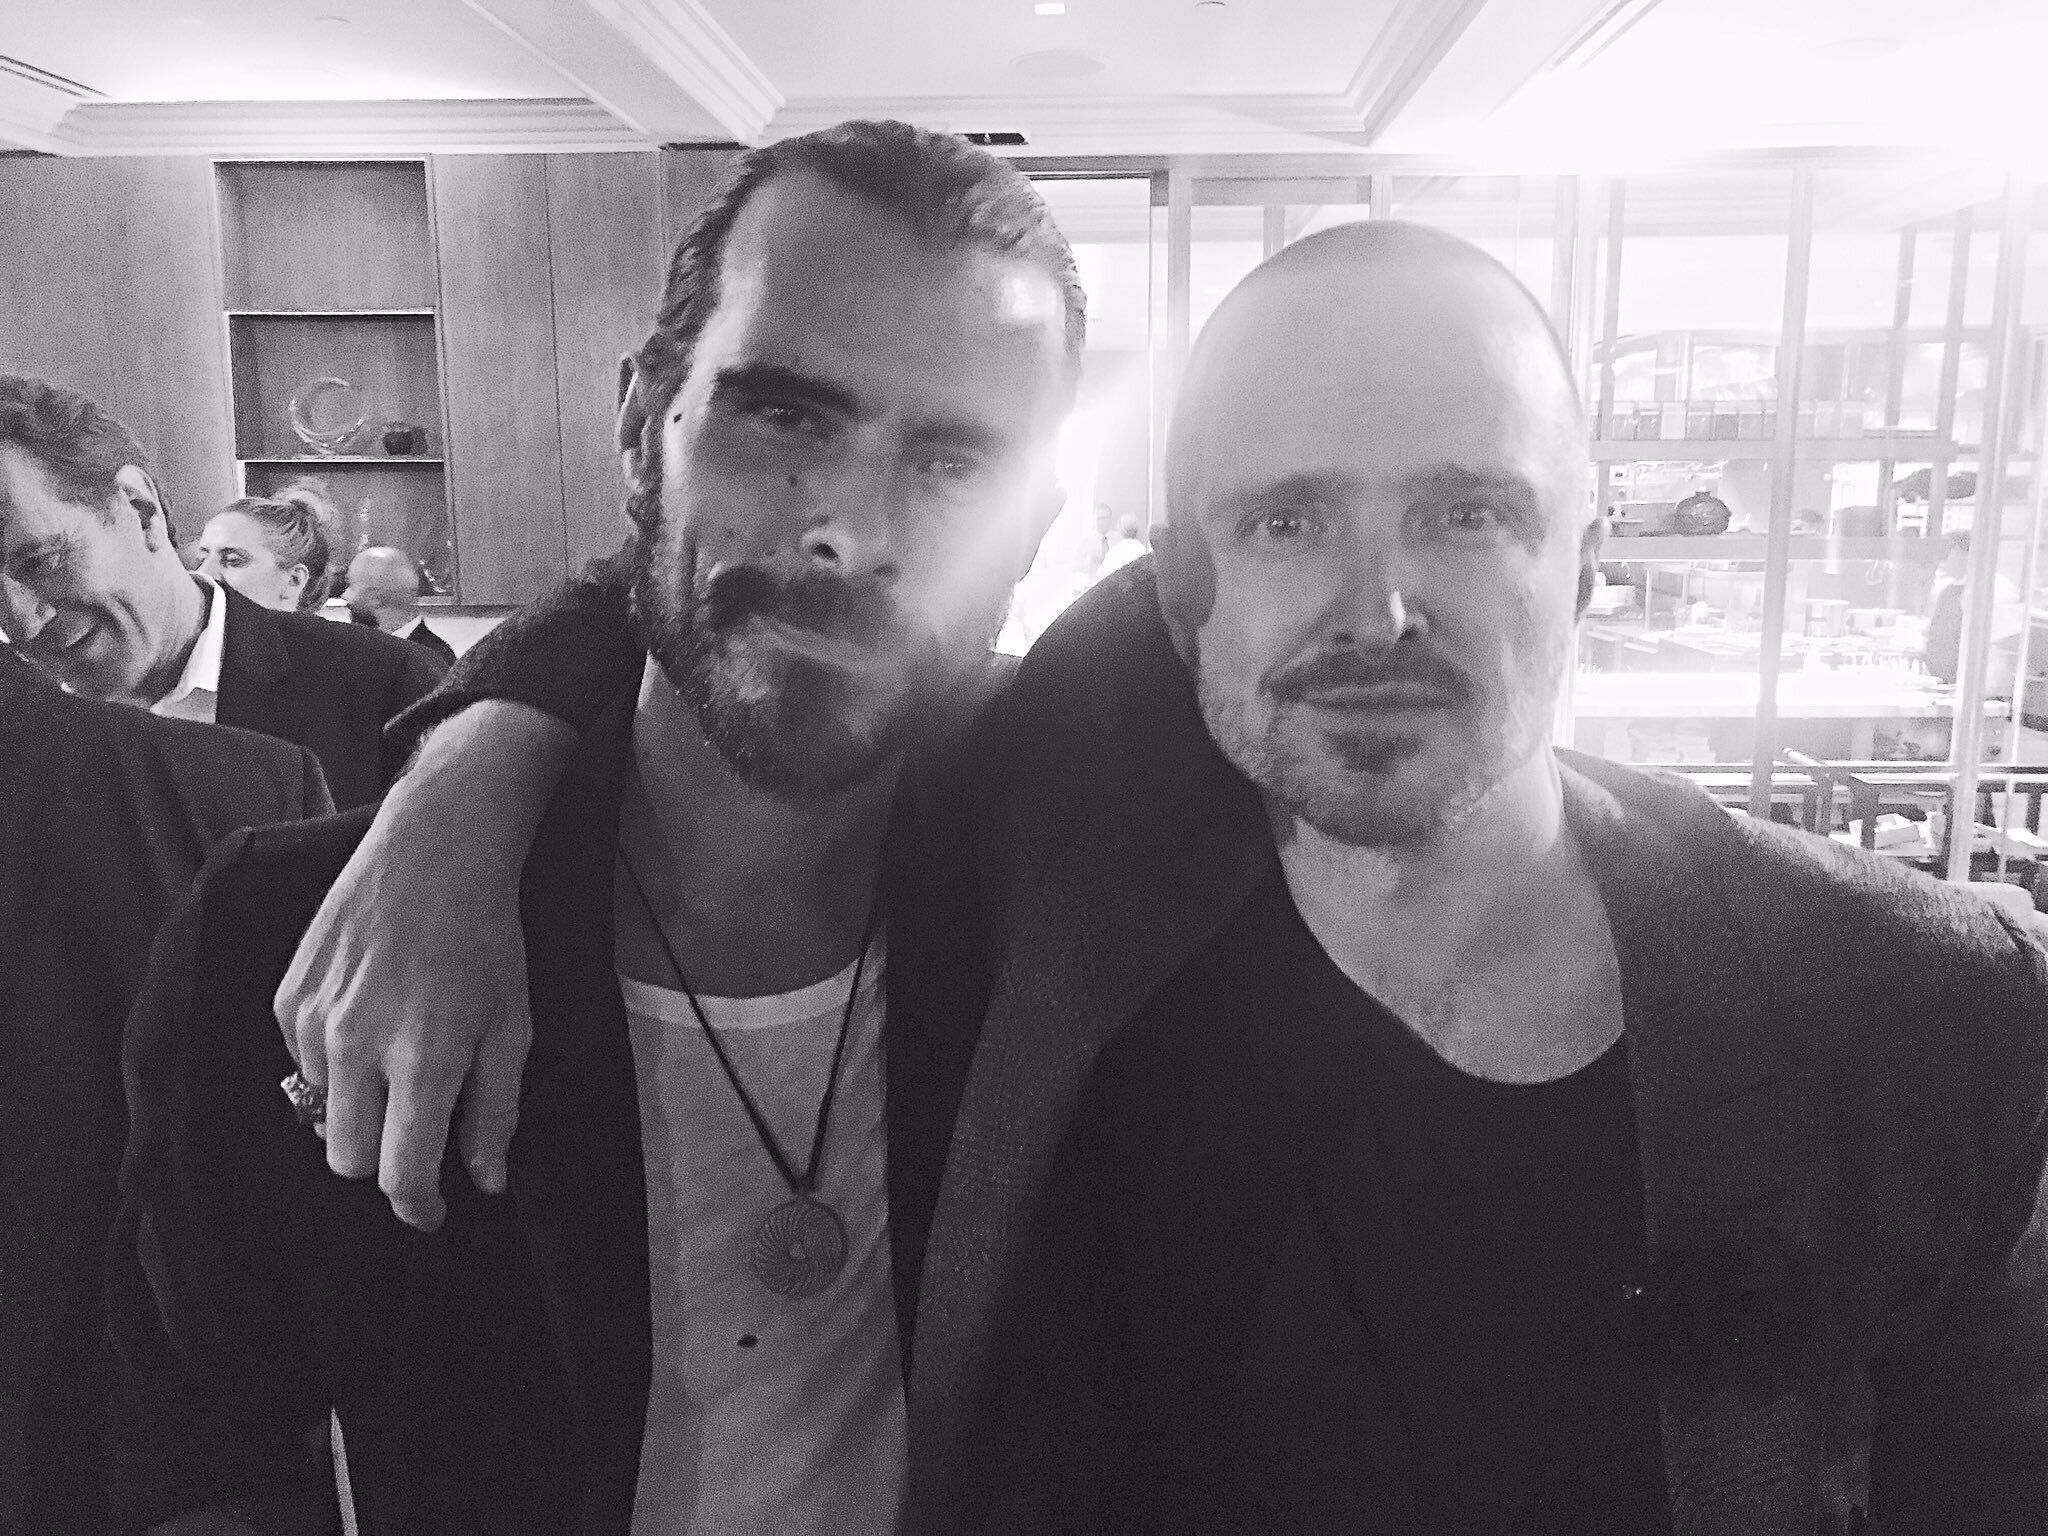 Reuben with Aaron Paul (Jesse Pinkman) at the Red Carpet event for El Camino - submitted photo